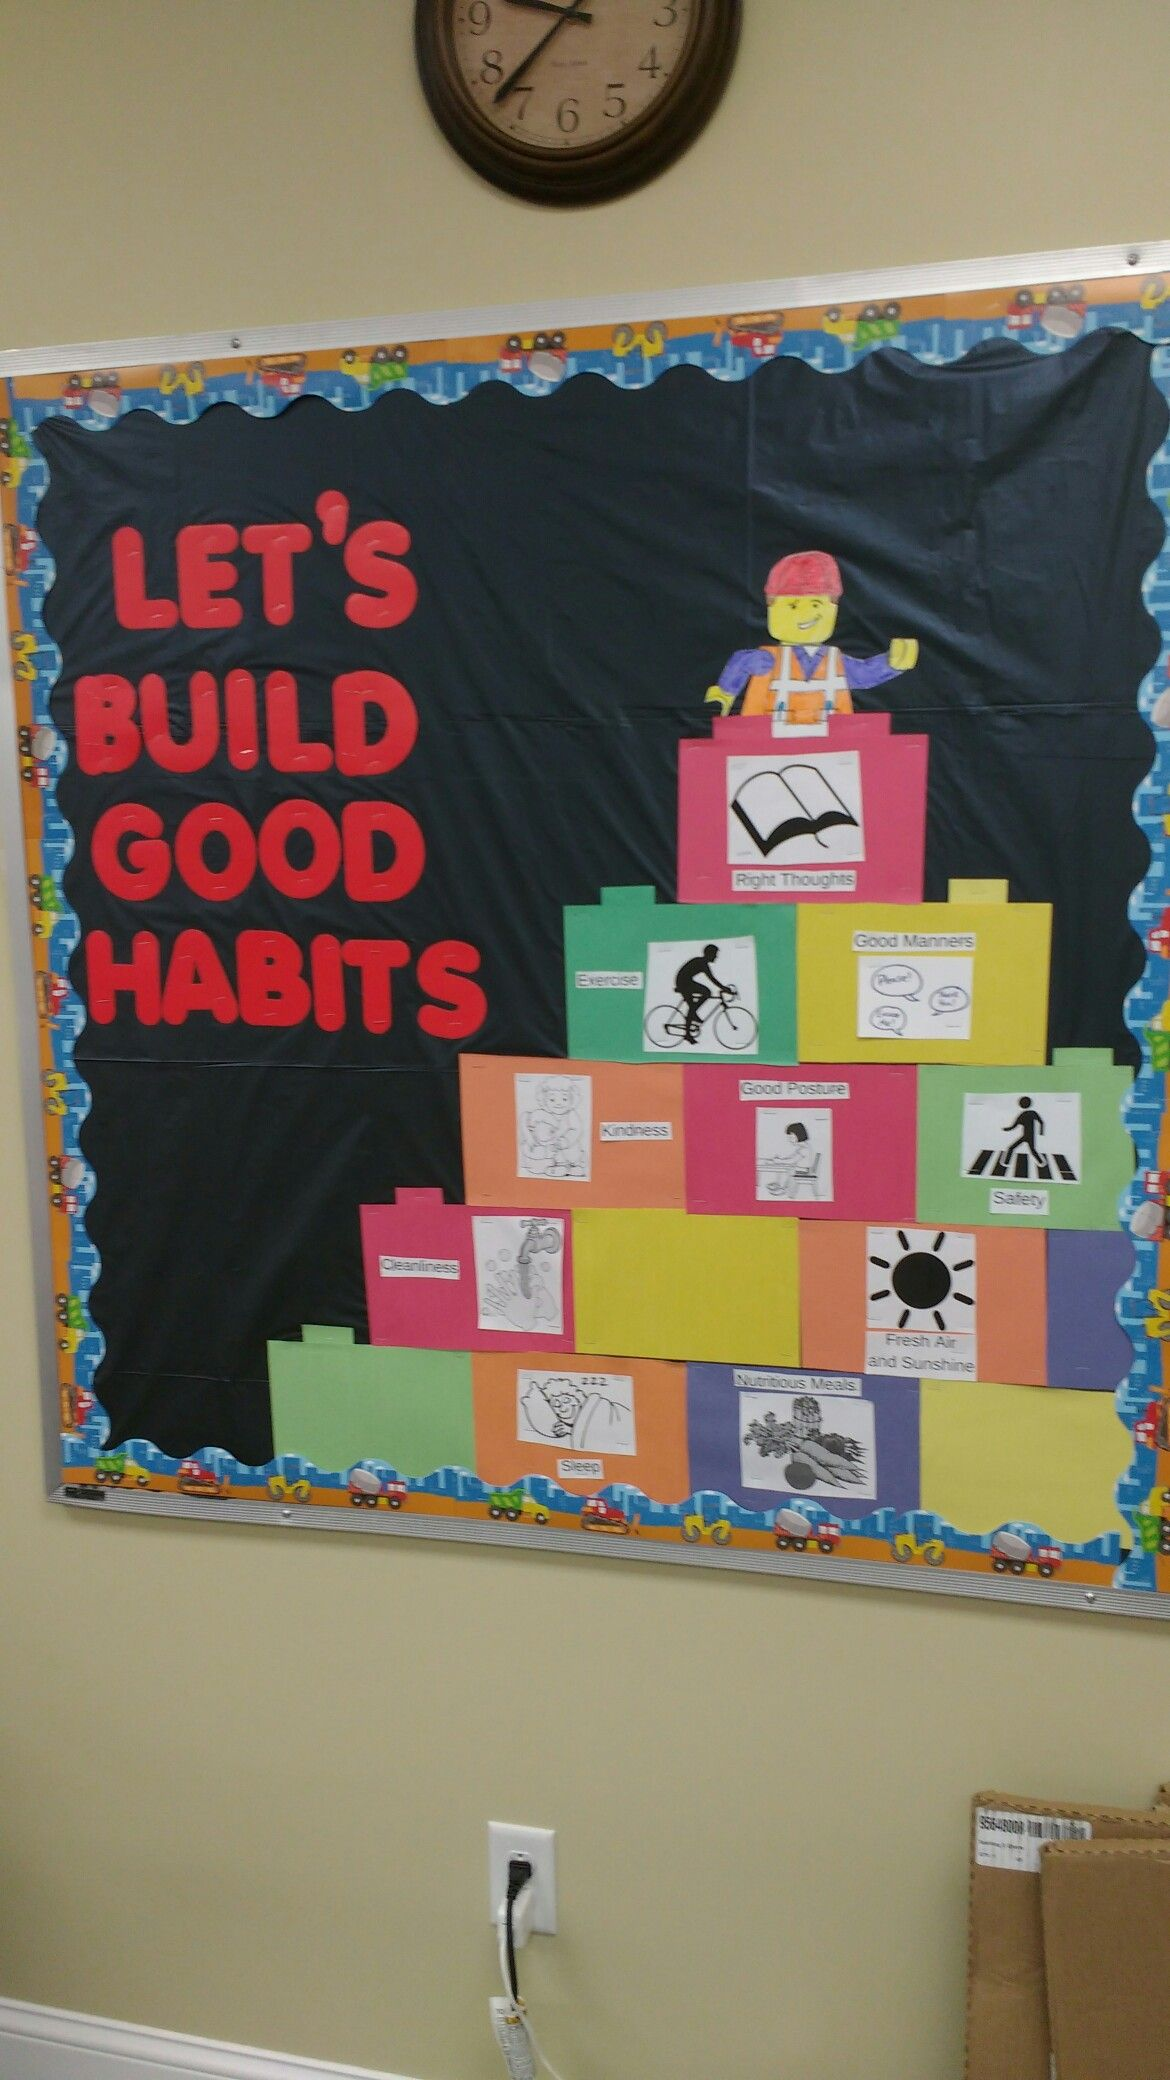 Health and safety bulletin board